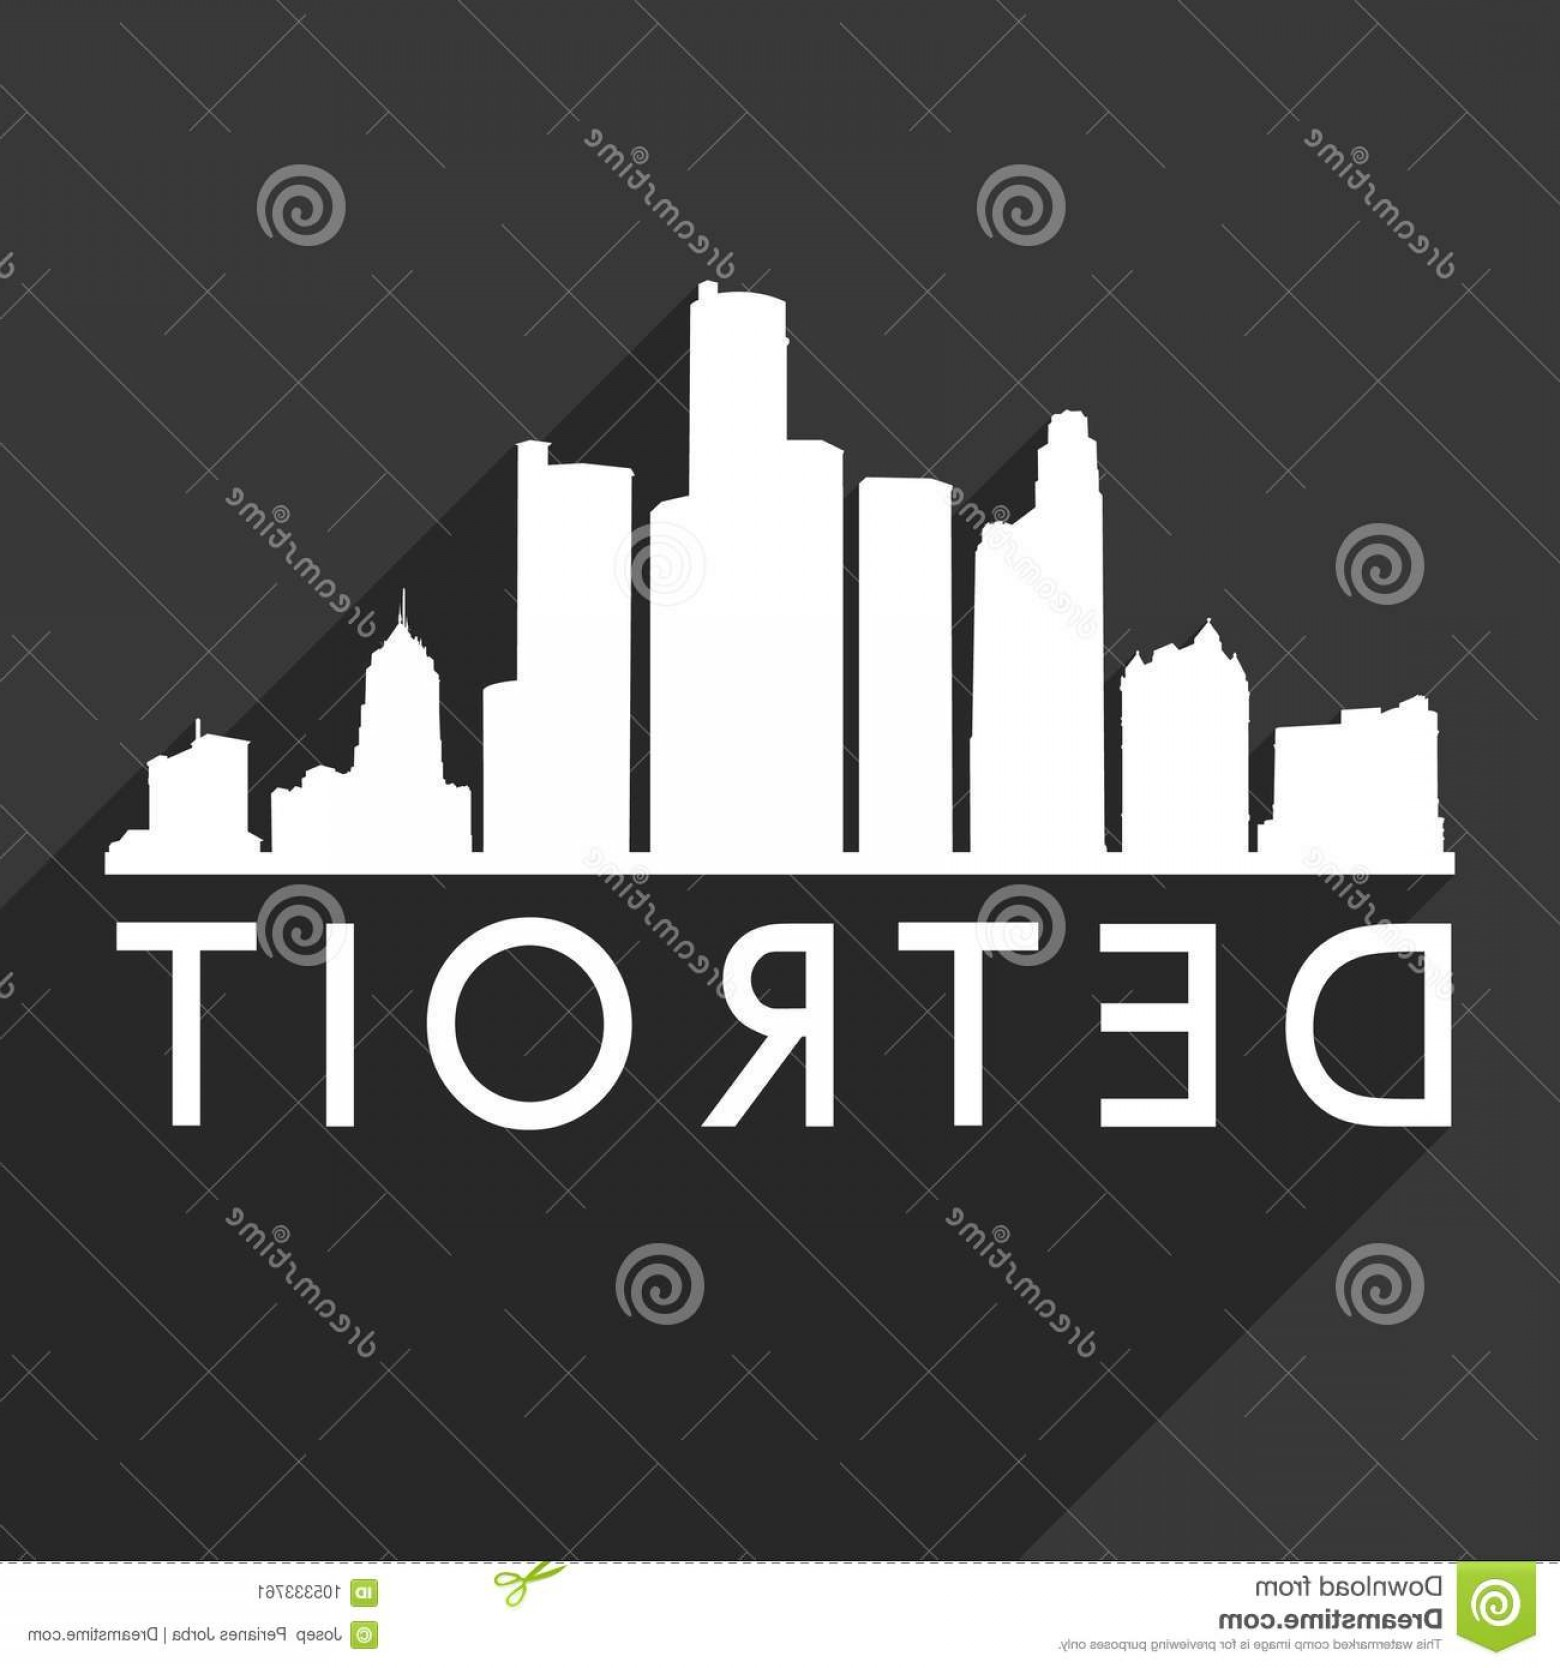 Michigan Vector Artwork: Detroit Michigan United States America Usa Icon Vector Art Flat Shadow Design Skyline City Silhouette Template Black Image